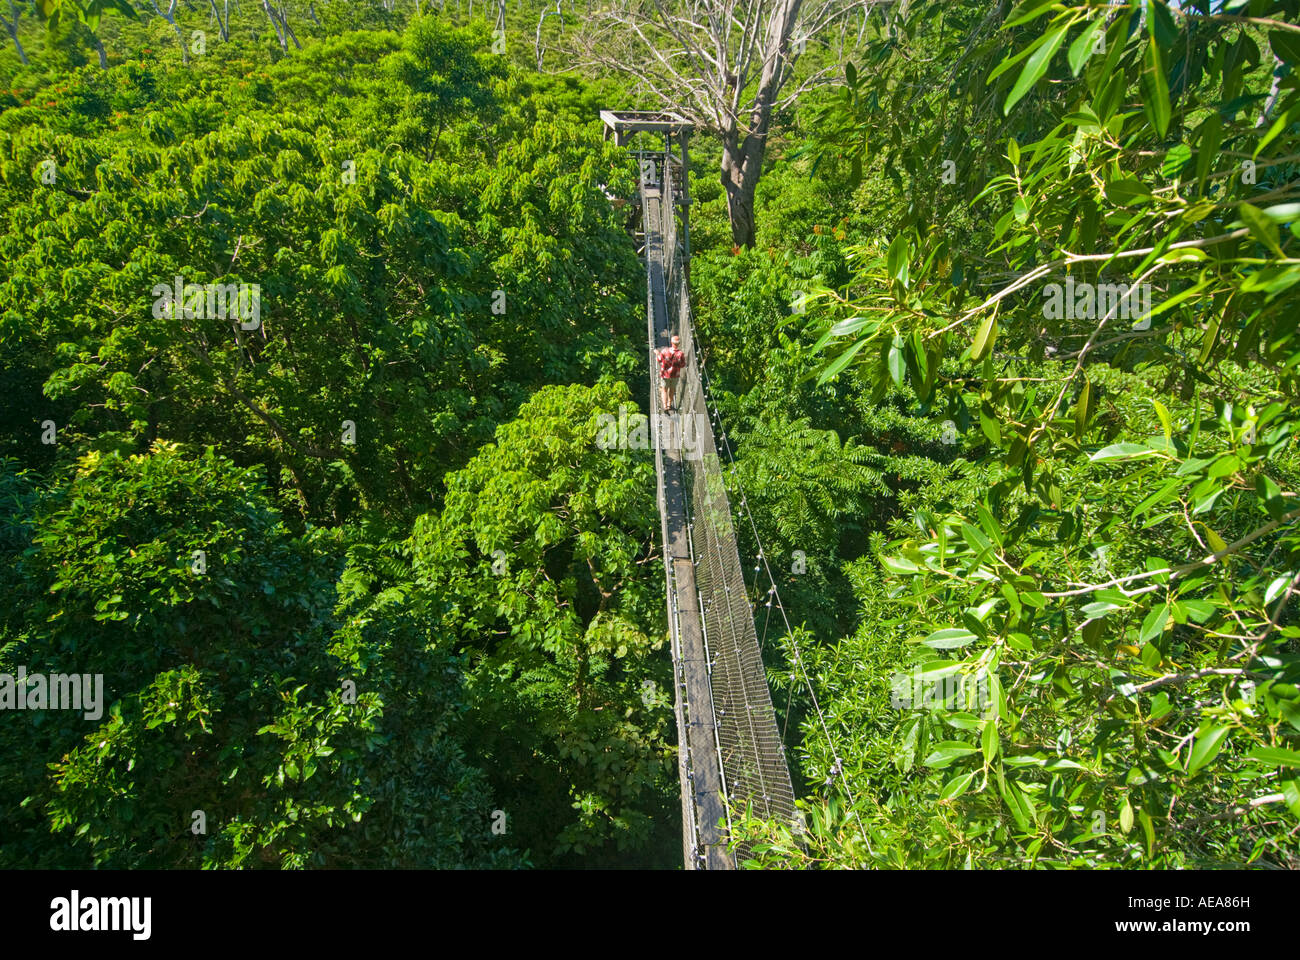 Falealupo Rainforest Preserve SAMOA Savaii forest canopy walkway over suspension bridge hanging man red shirt & Falealupo Rainforest Preserve SAMOA Savaii forest canopy walkway ...